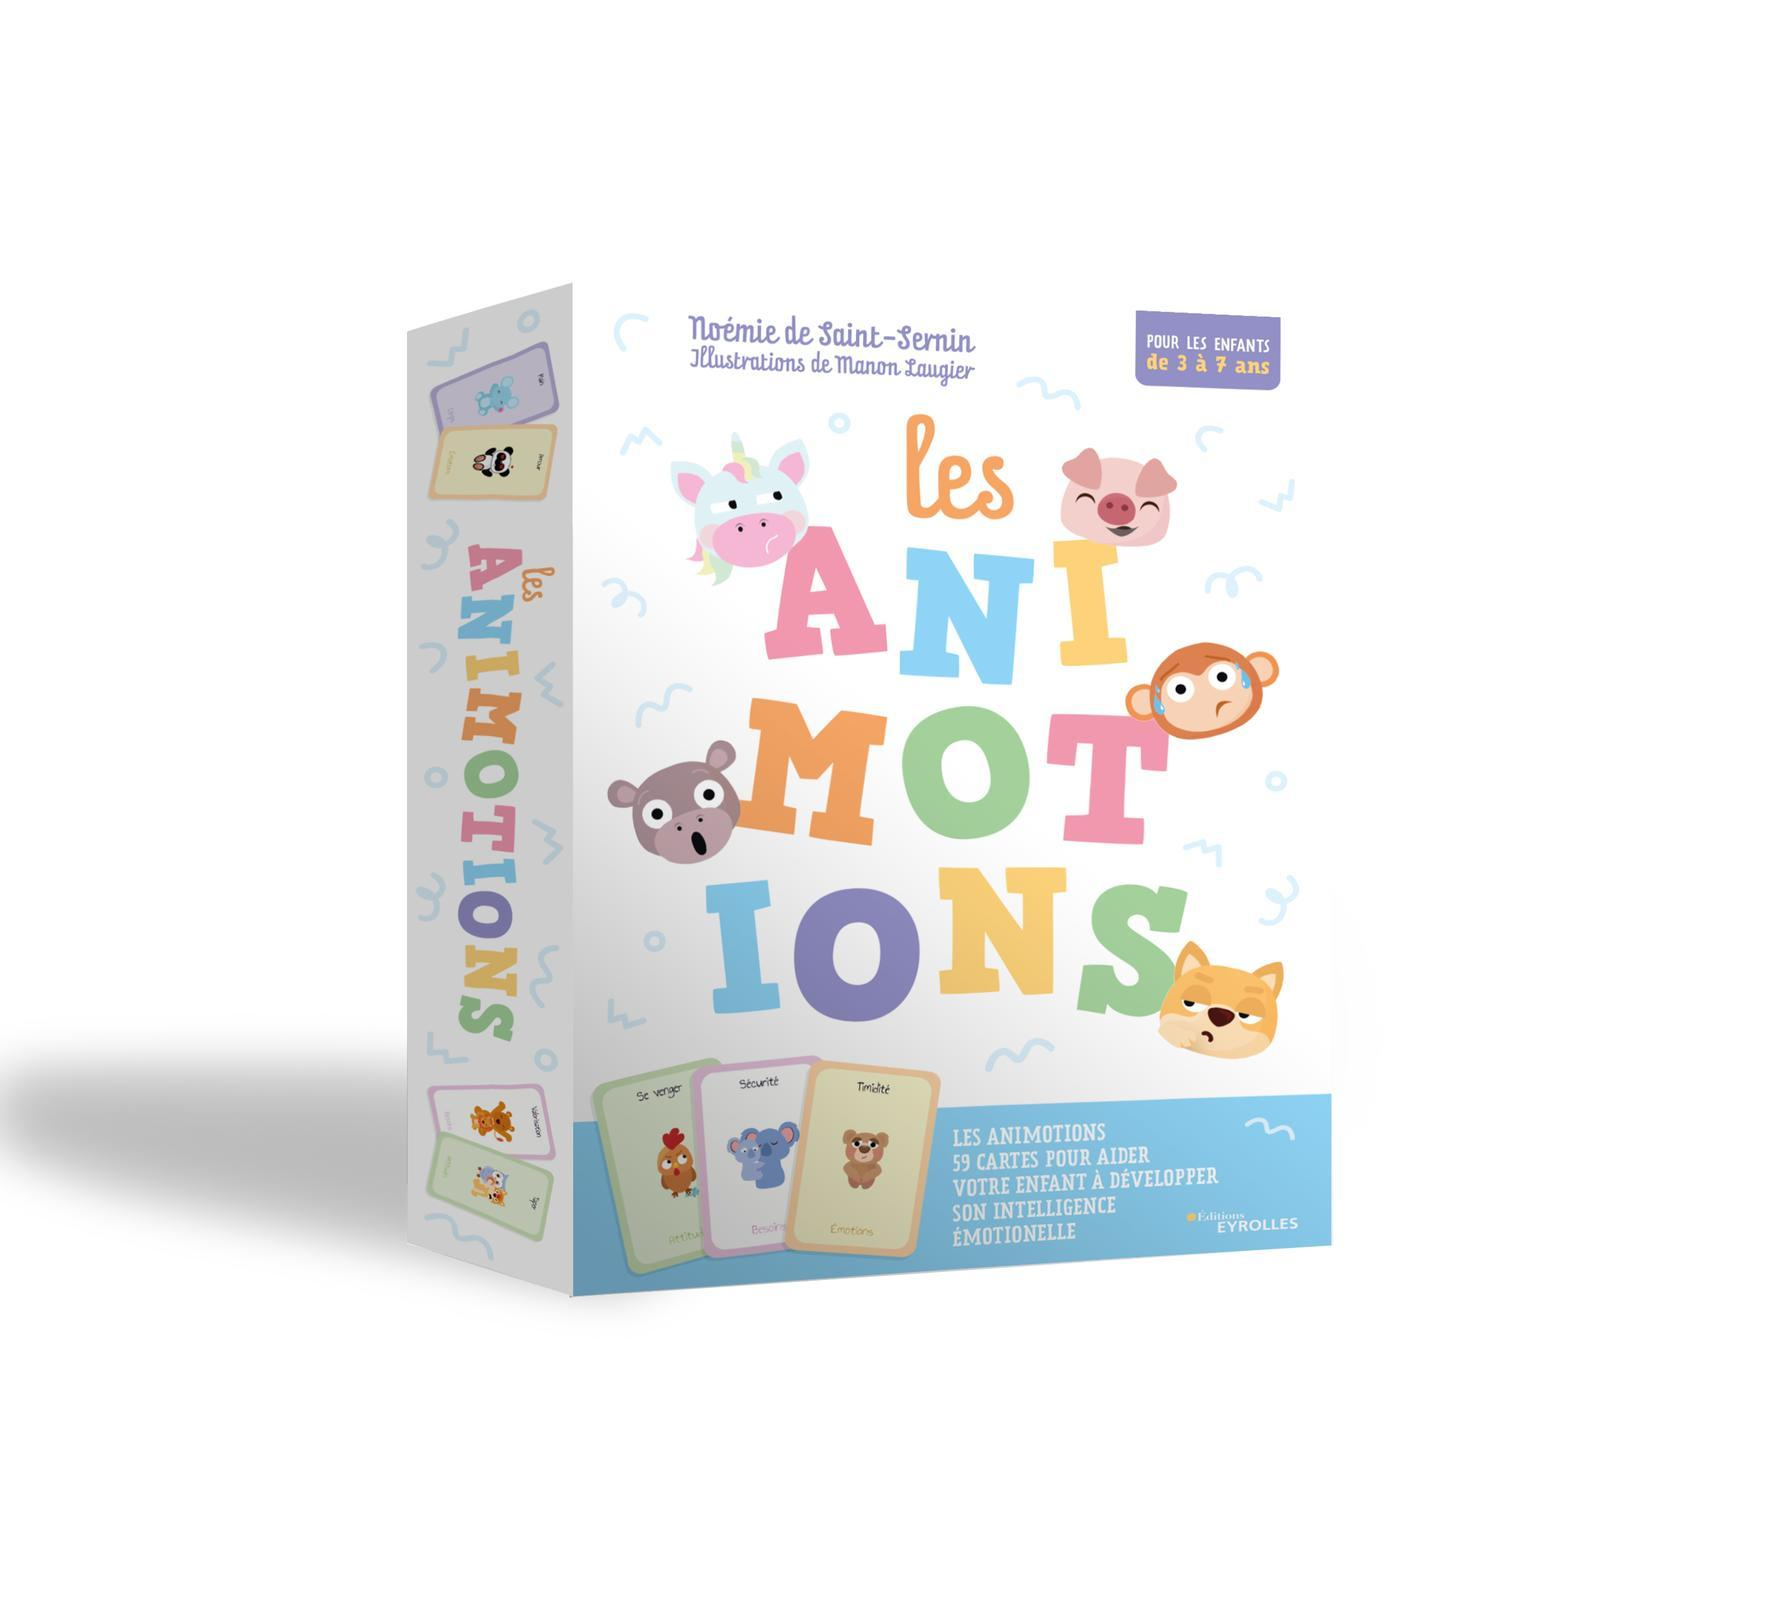 LES ANIMOTIONS - 59 CARTES POUR AIDER VOTRE ENFANT A DEVELOPPER SON INTELLIGENCE EMOTIONNELLE